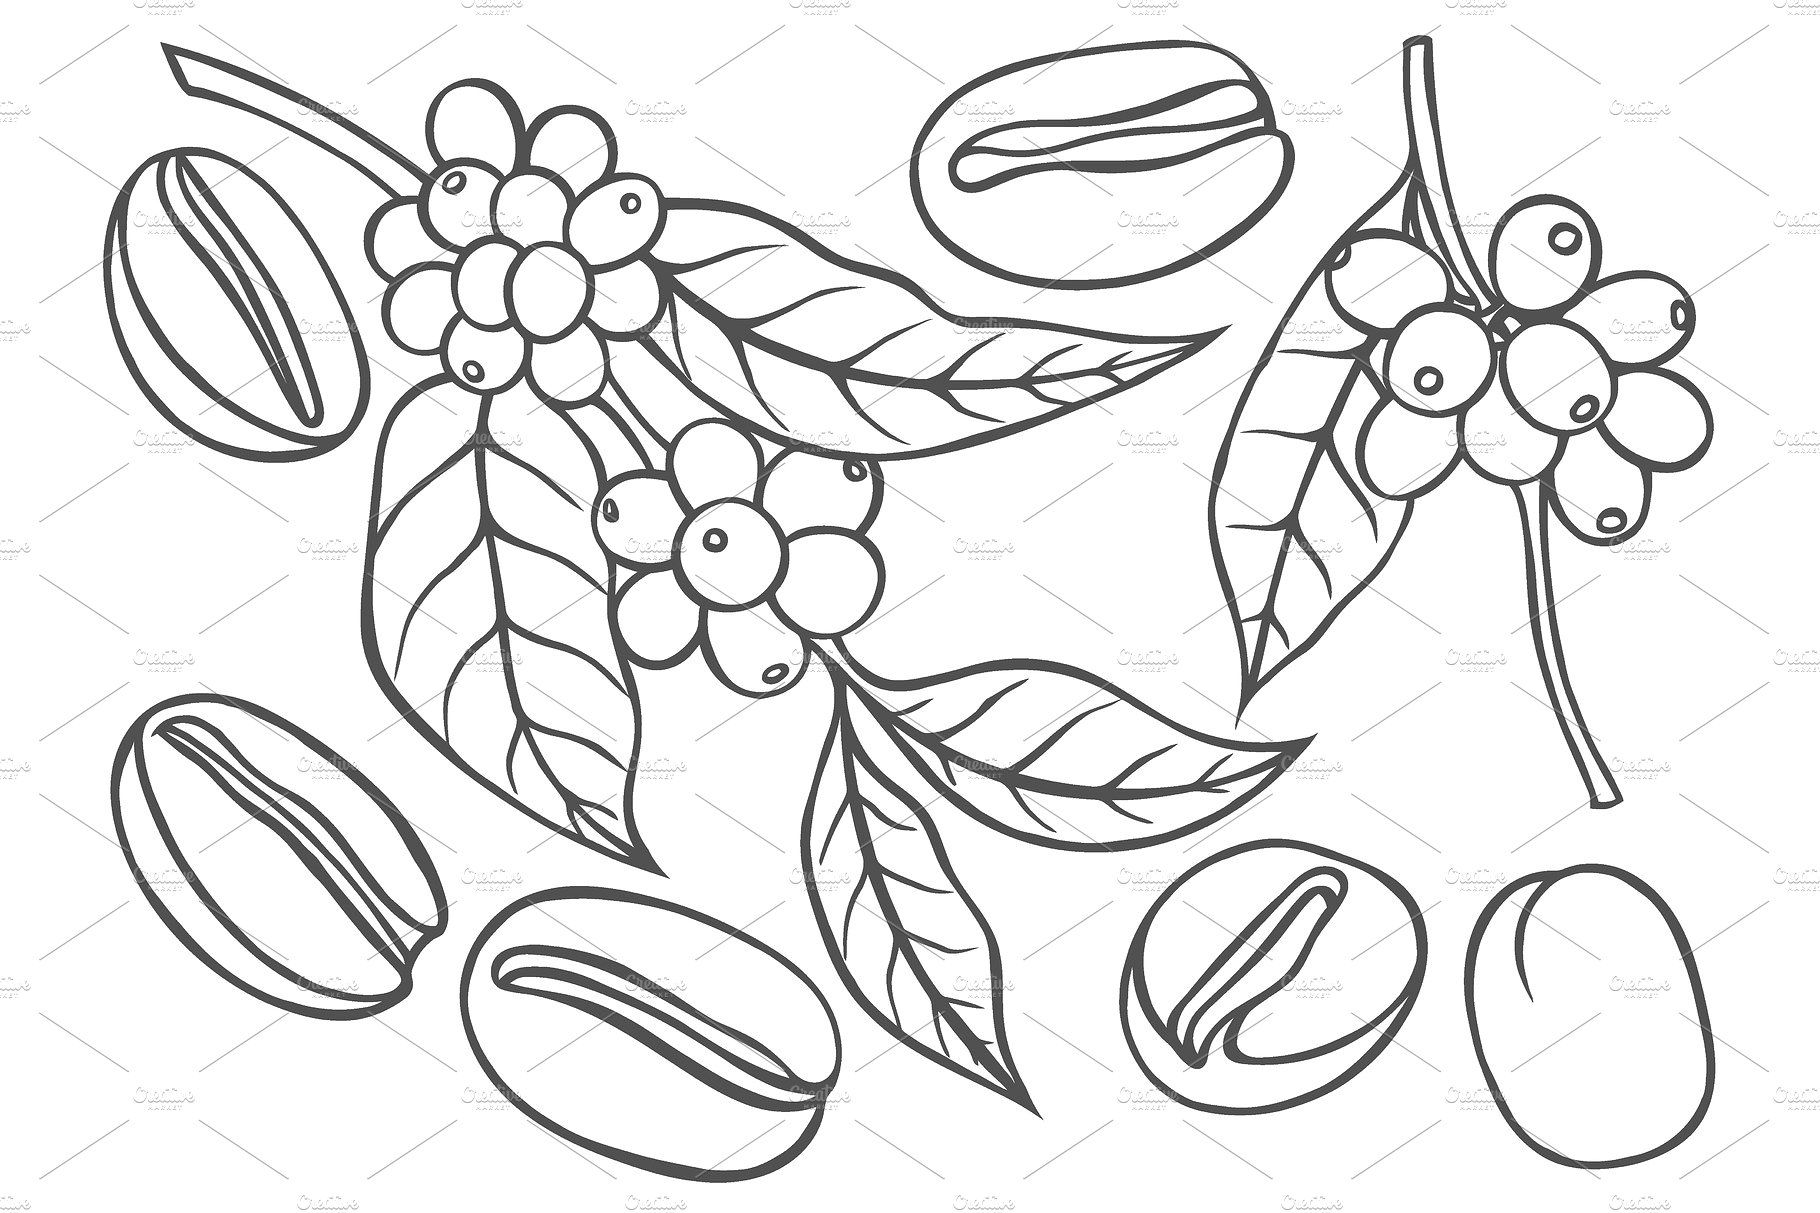 Berries Leaves Shoots And Grains Of Coffee Monochrome Drawing